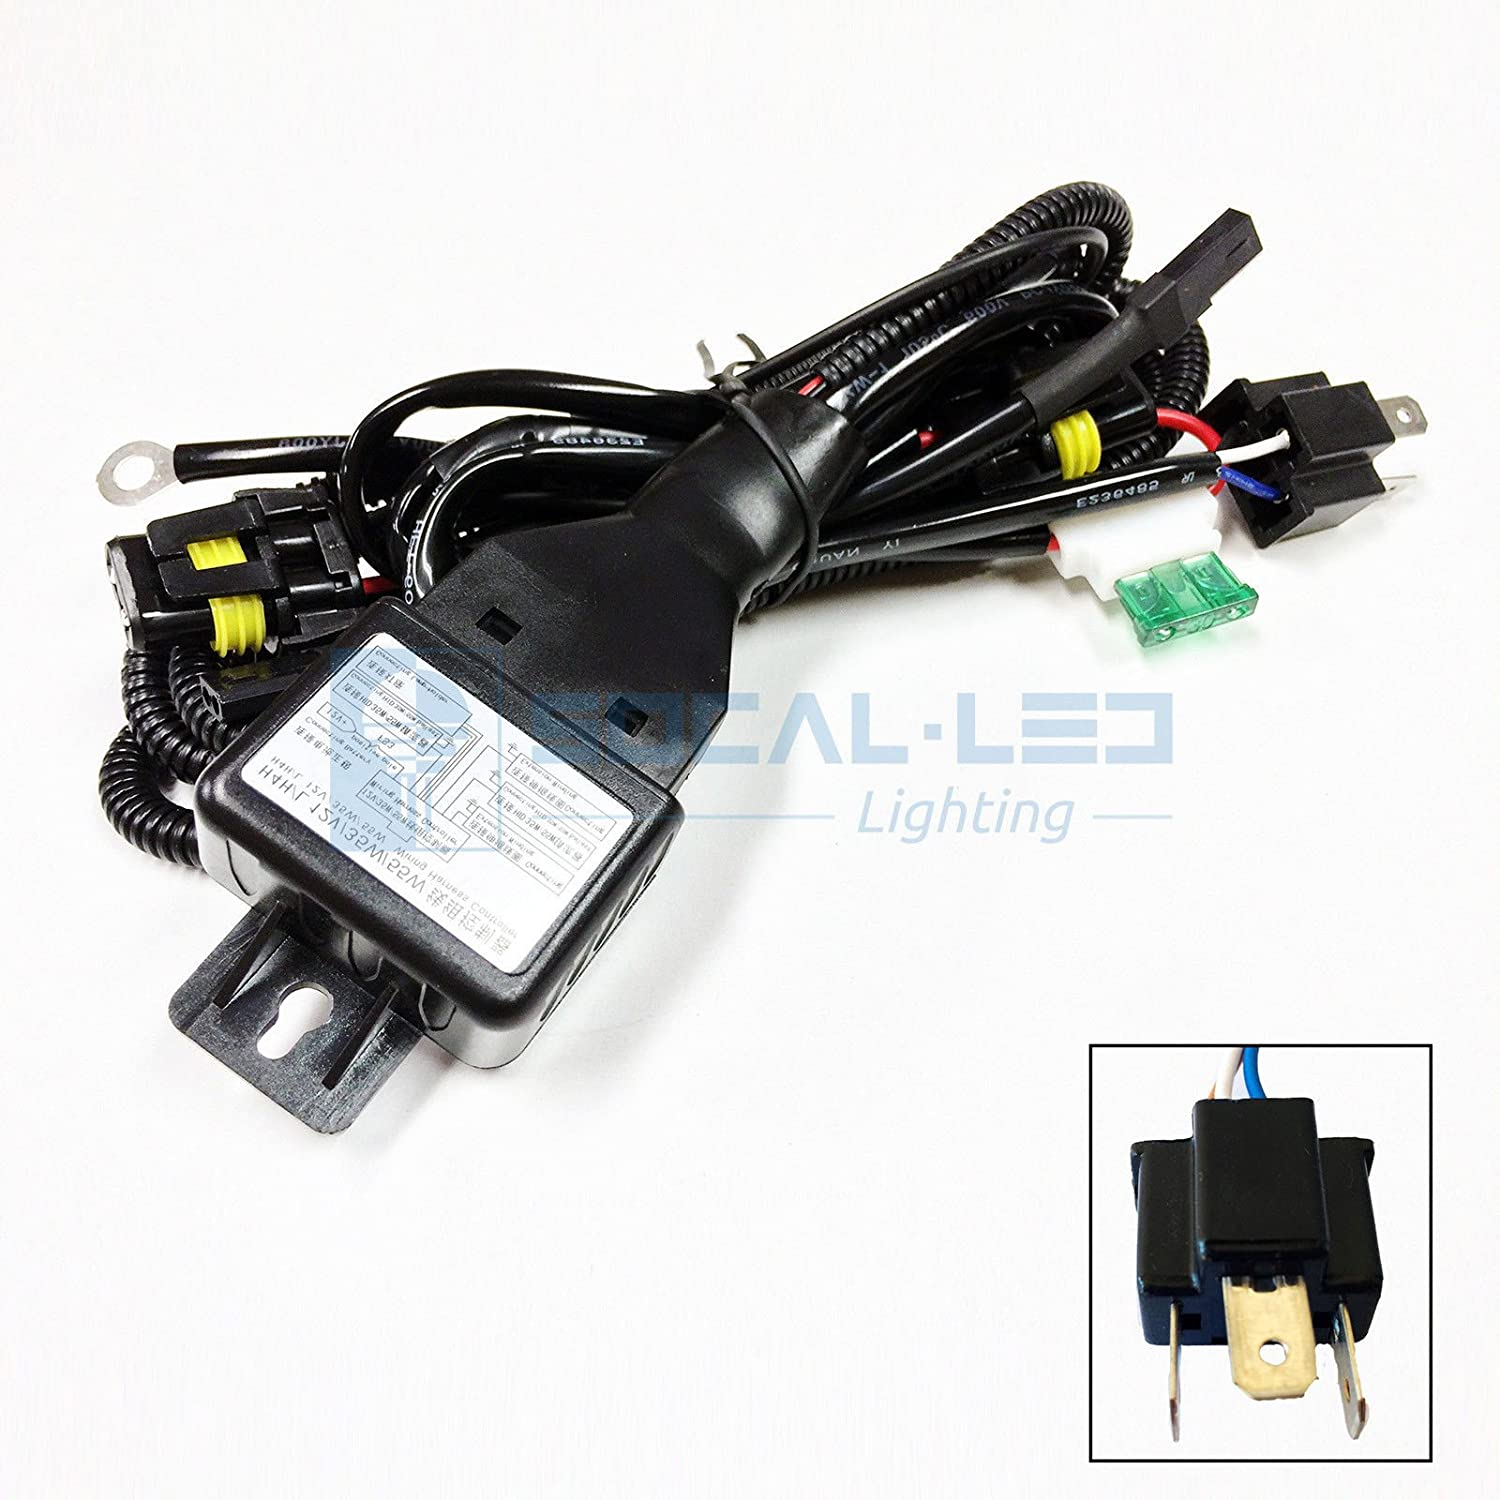 81lX2OBNA6L._SL1500_ amazon com o nex hid relay harness 9007 (hb5 9004) 12v 35w 55w bi hid 12v 35w wiring harness controller at reclaimingppi.co